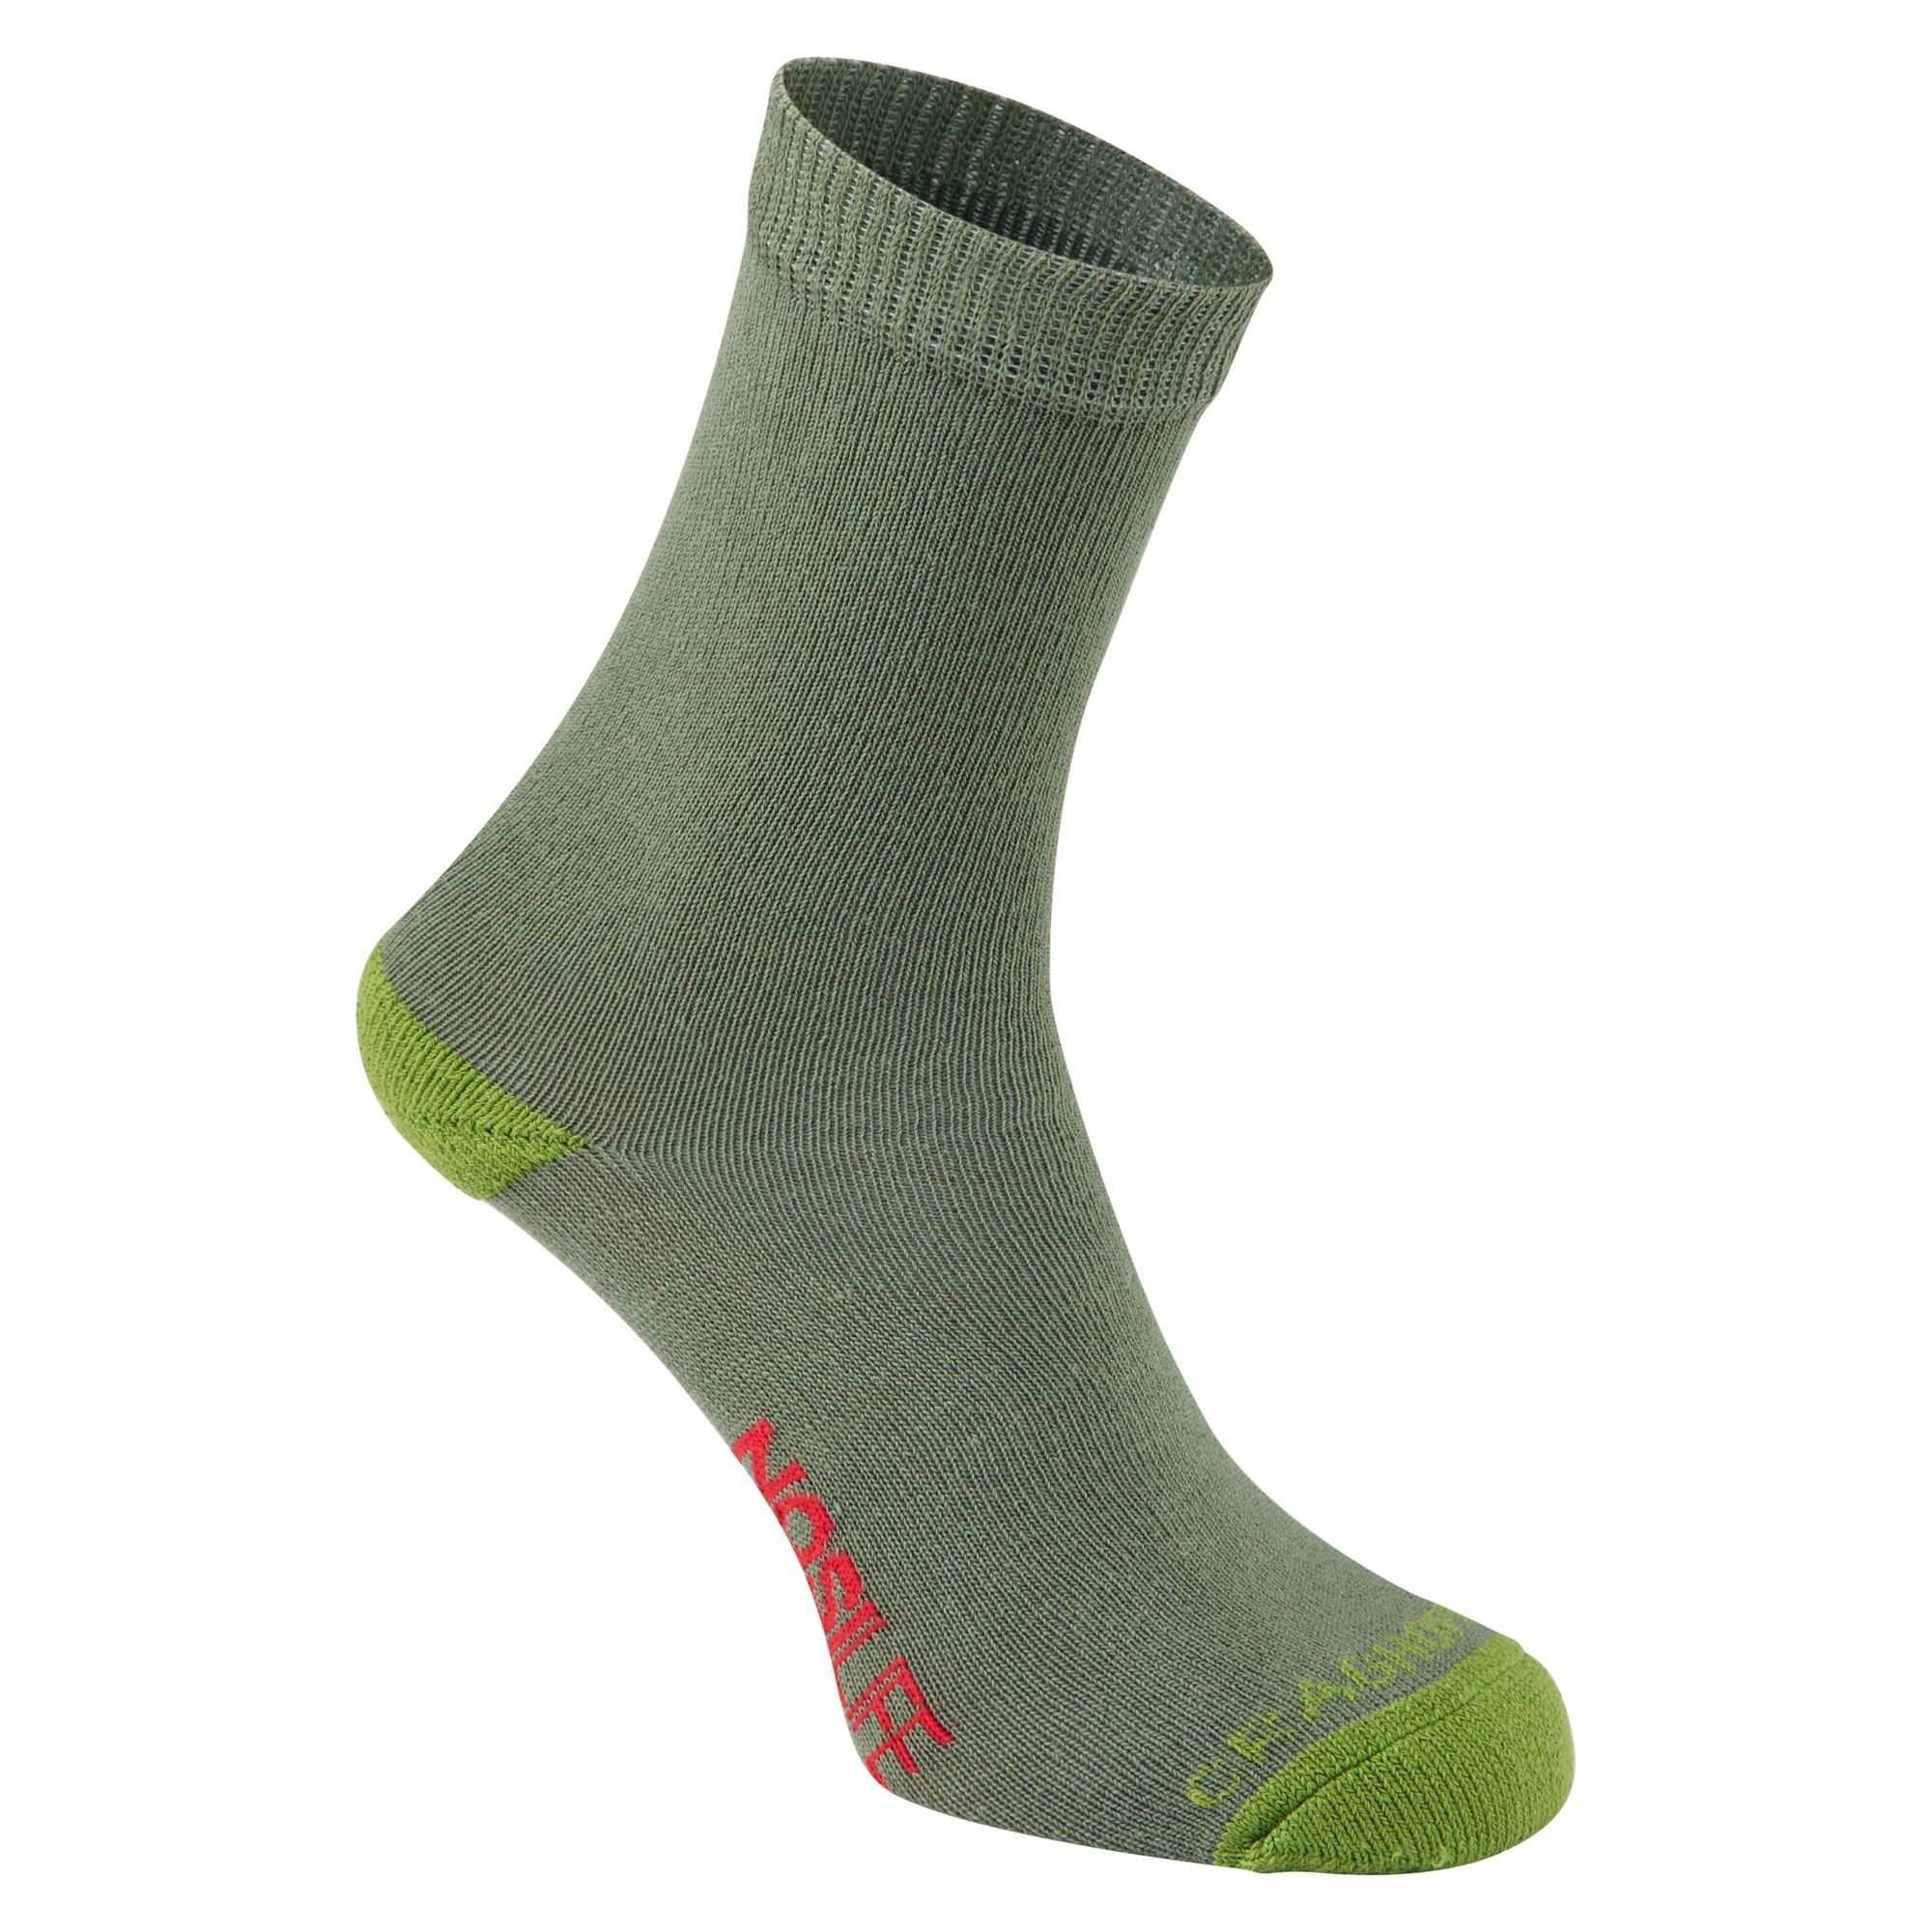 Craghoppers Kids Nosilife Travel Socken Grün, Daunen EU 29-34-UK 11-2 -Farbe Da